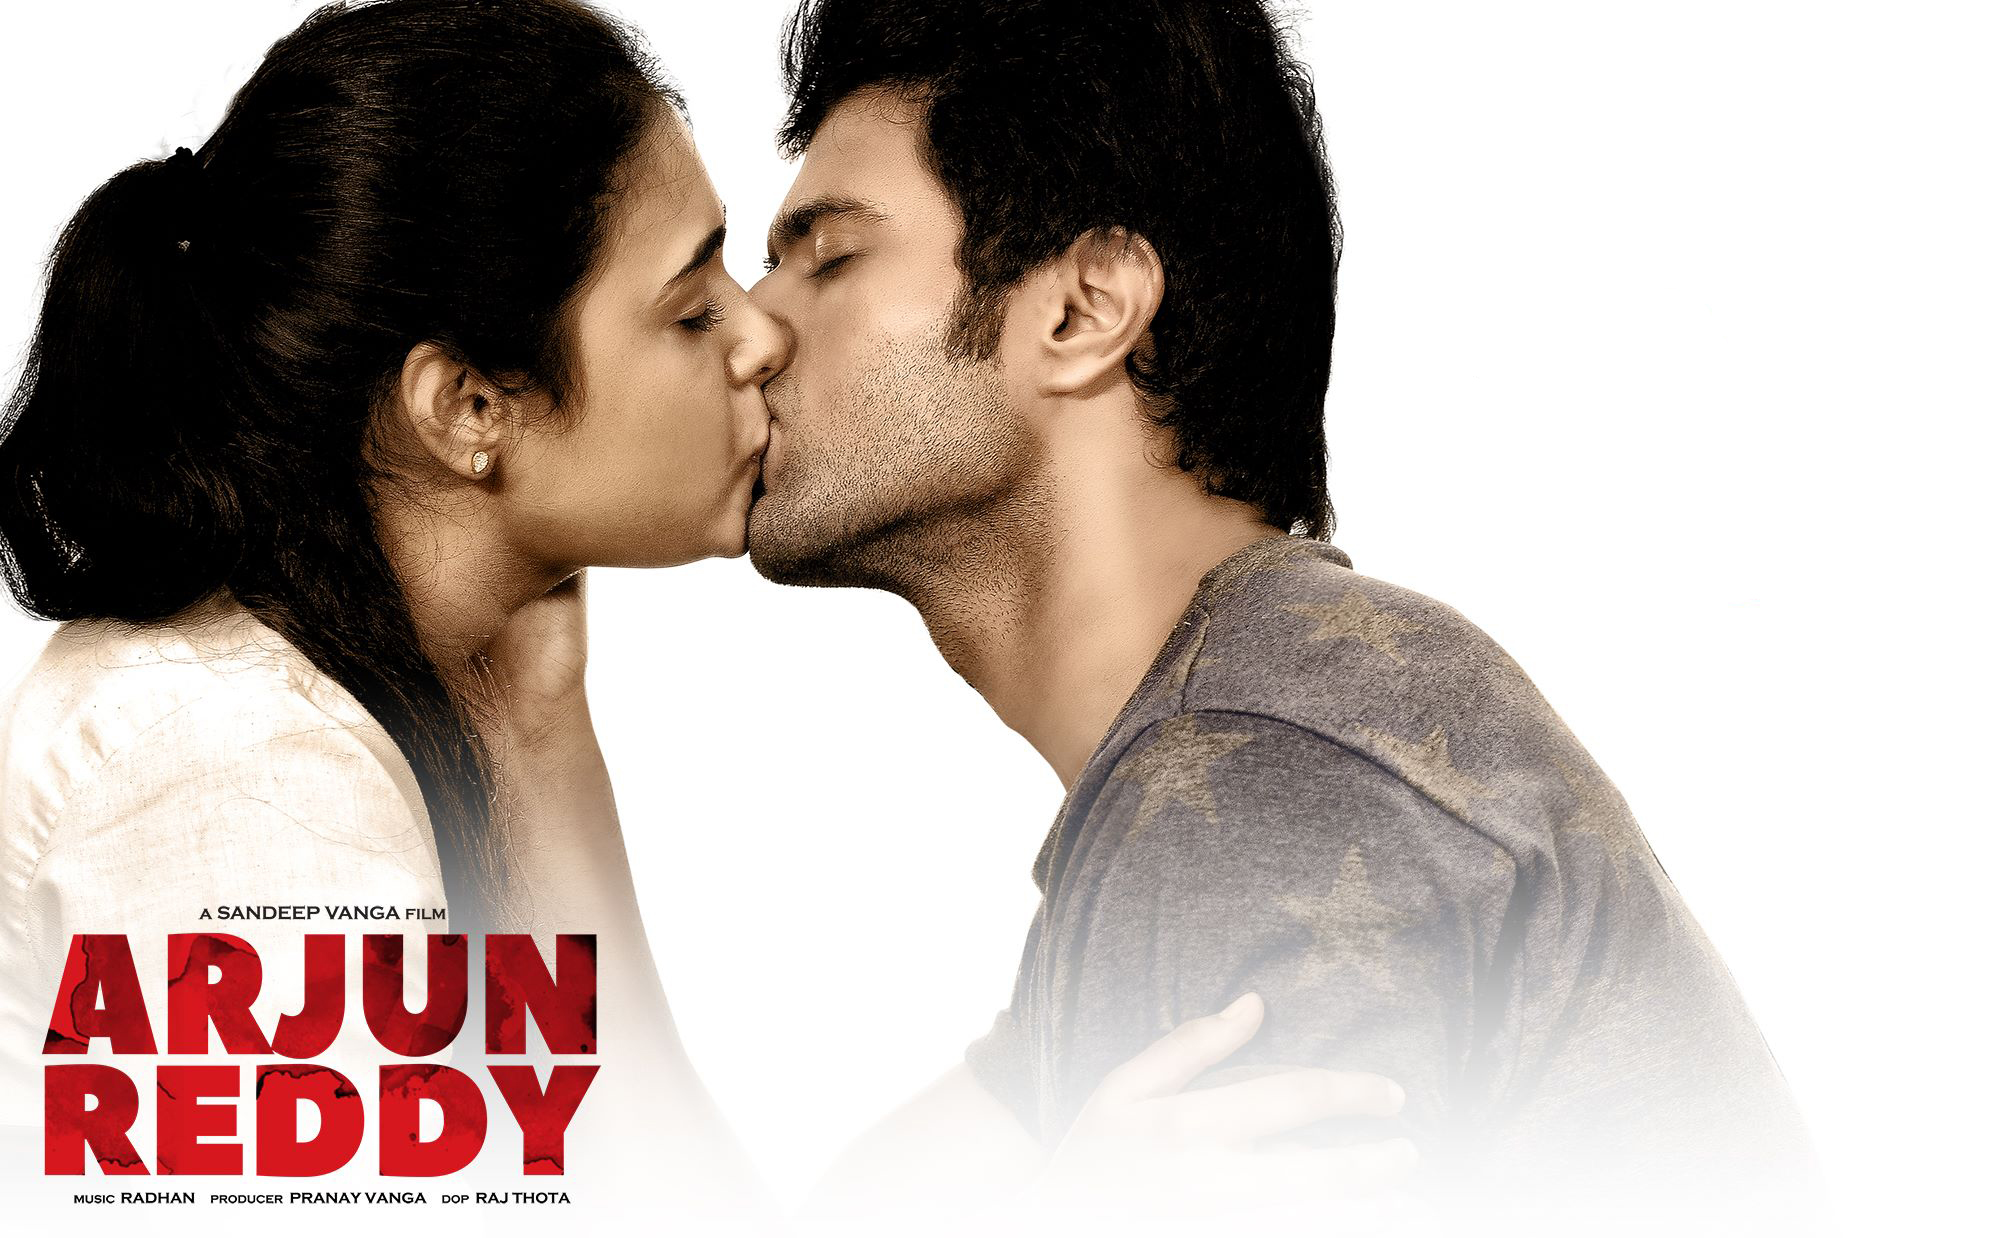 arjun reddy background 4 wallpapers hd free of games animals movies and more